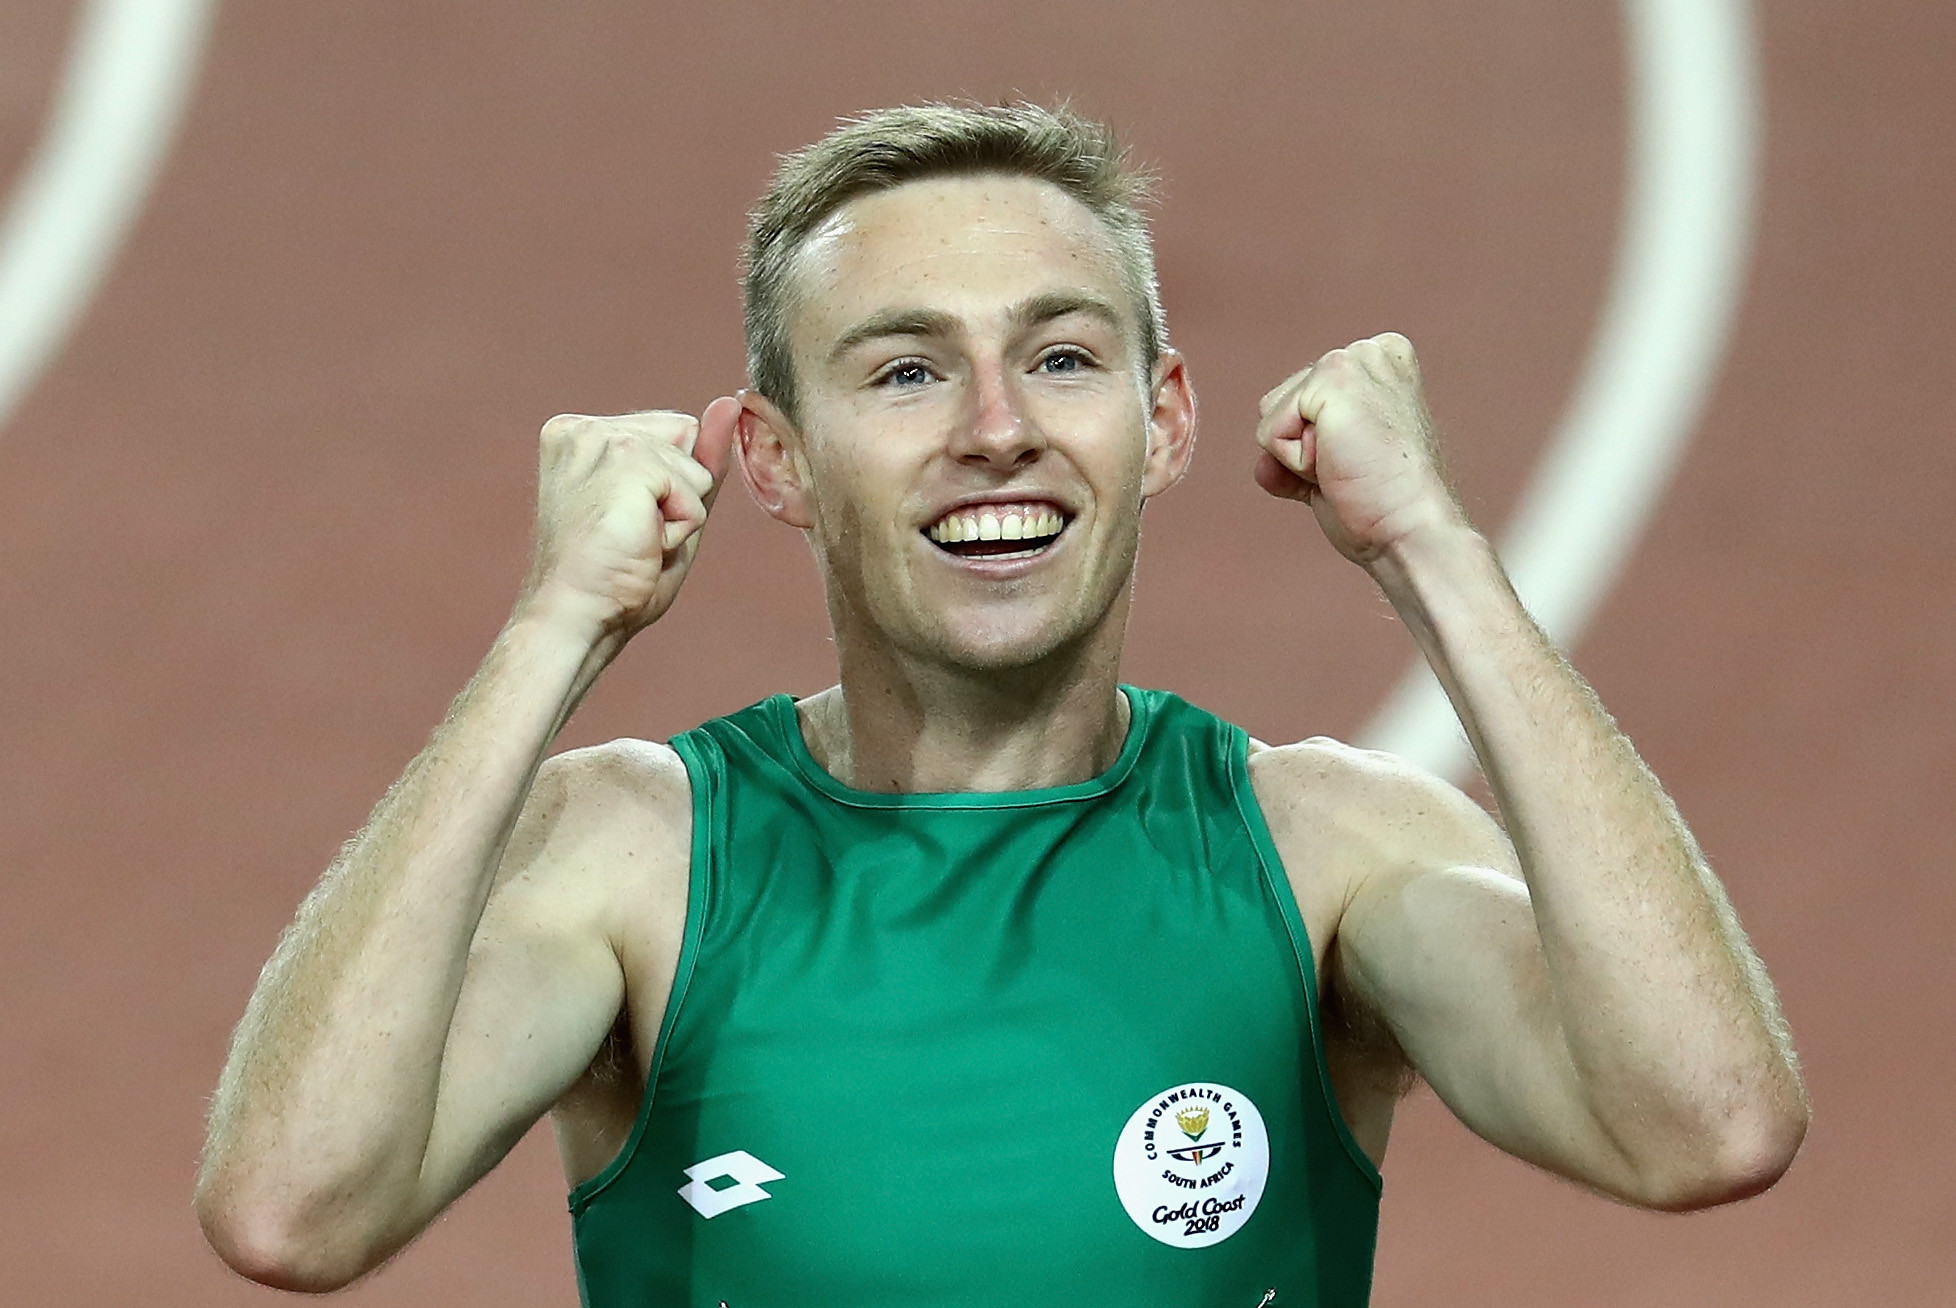 South Africa's Charl du Toit remains the dominant force in the men's T37 400m, winning again in Tunis ©Getty Images